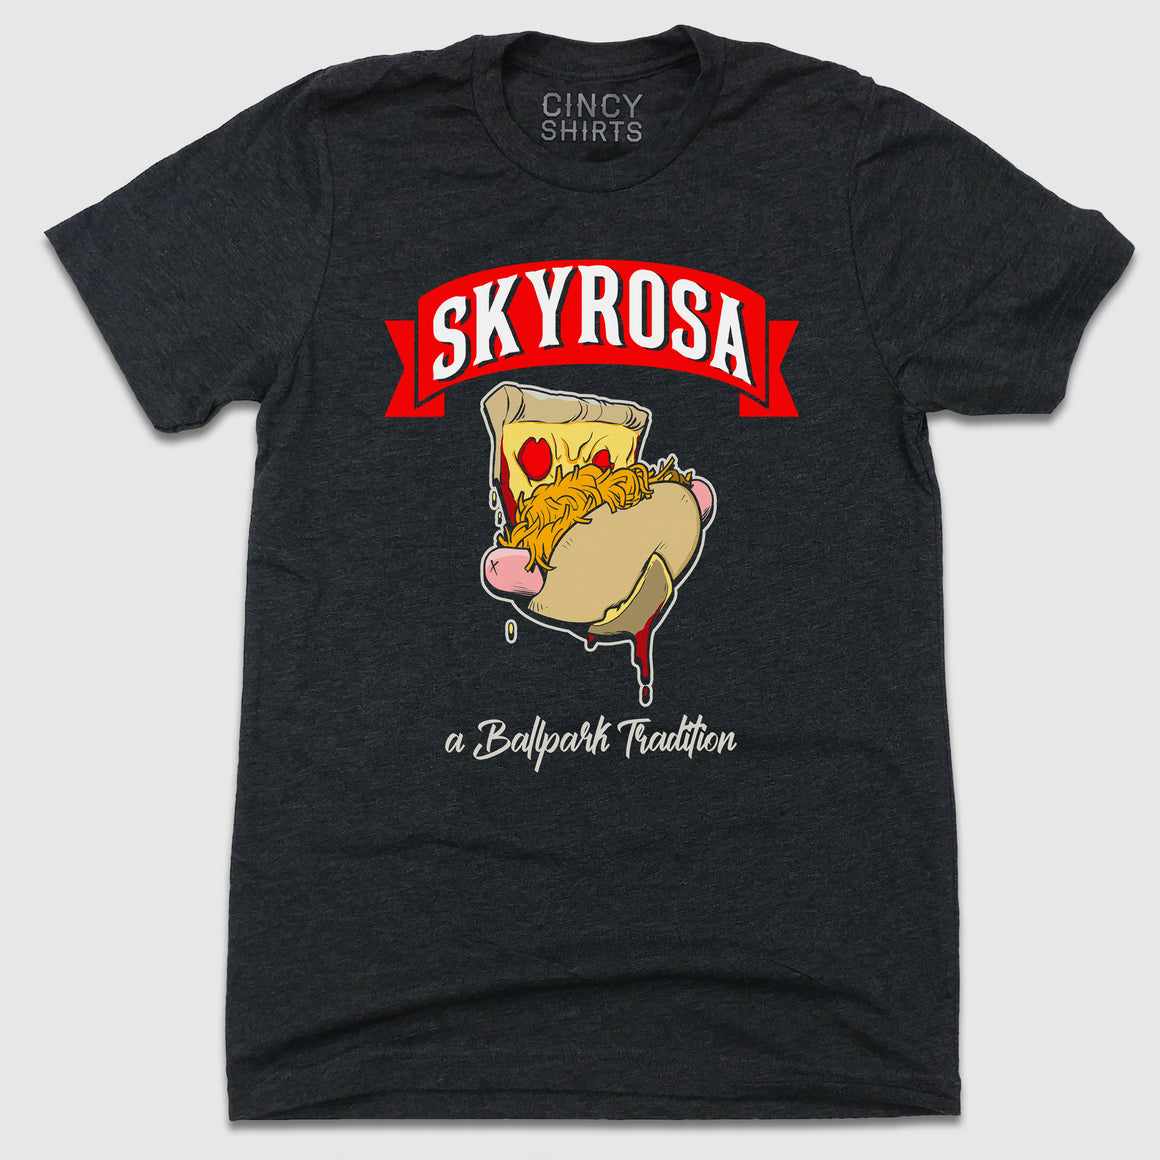 Skyrosa - Cincy Shirts